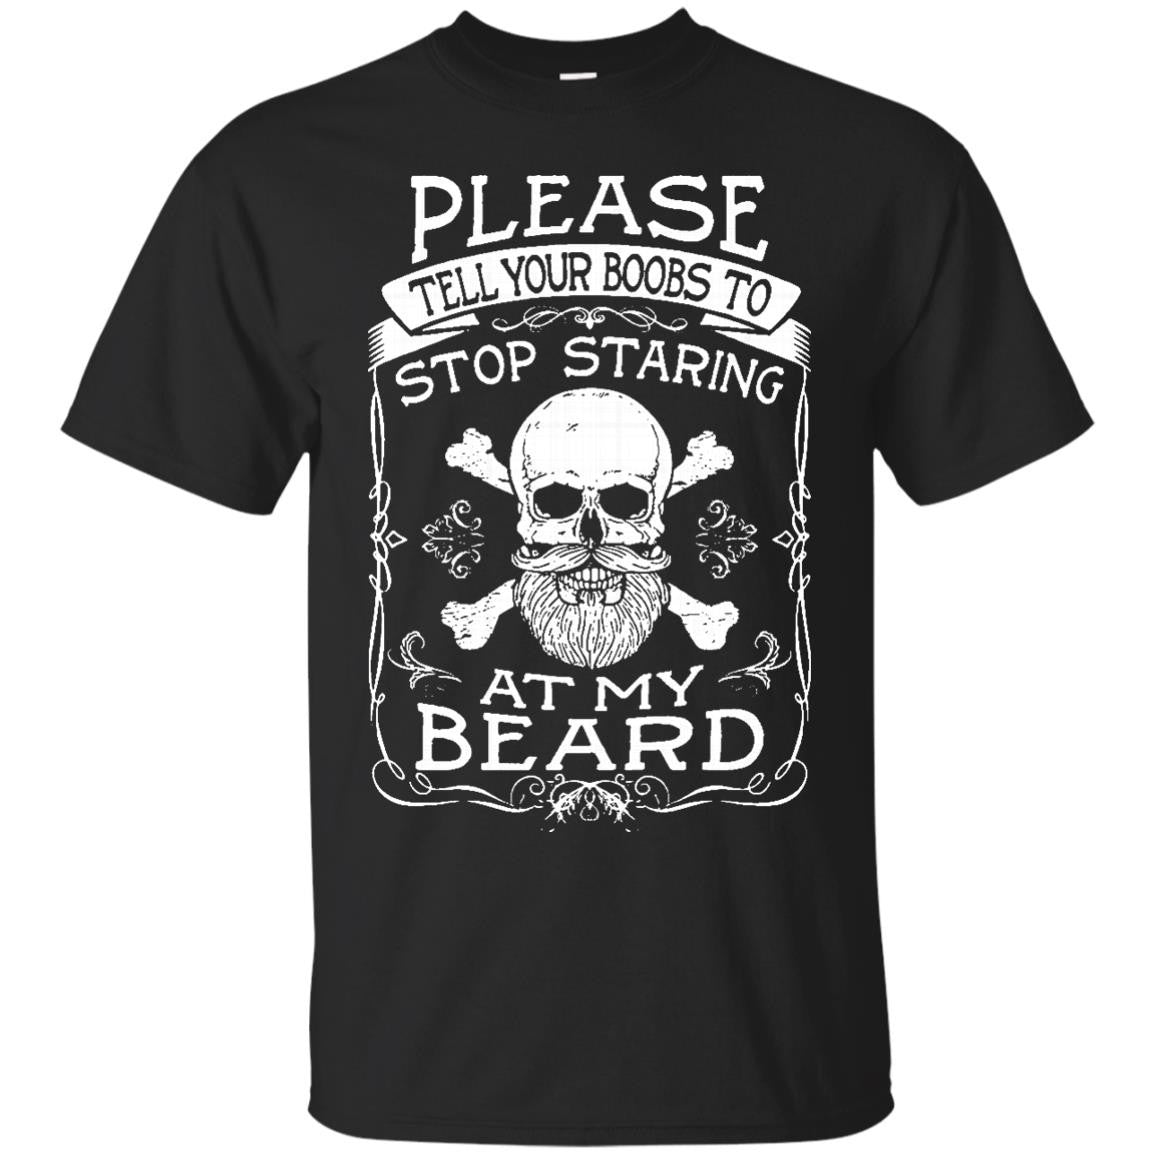 Please Tell Your Boobs to Stop Staring at my Beard T-Shirt